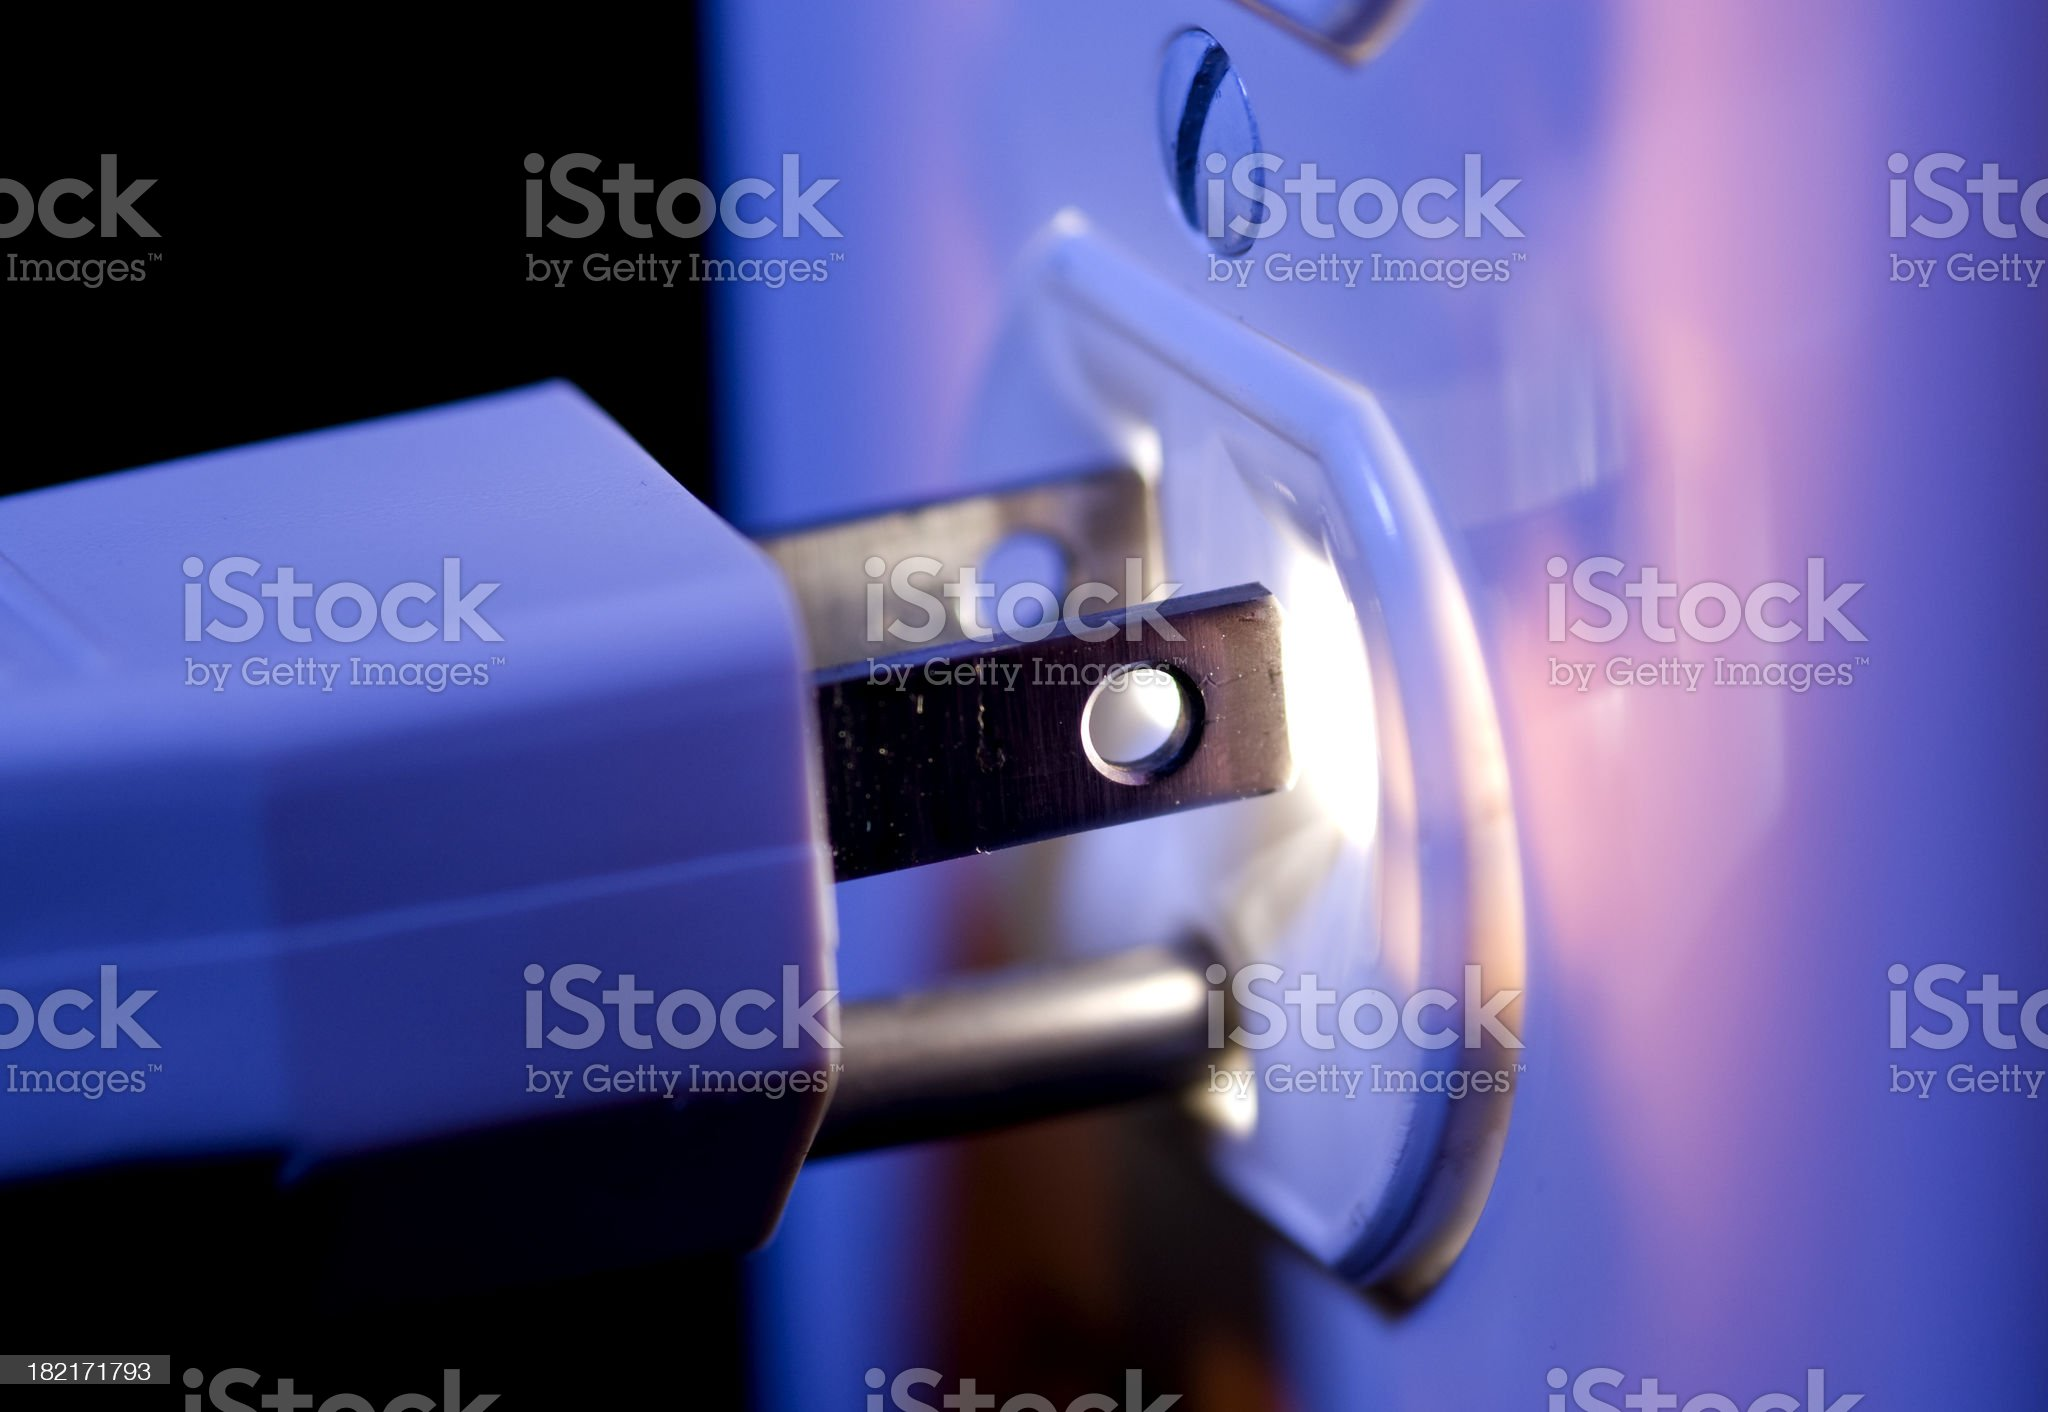 Glowing Electric Outlet and Plug royalty-free stock photo